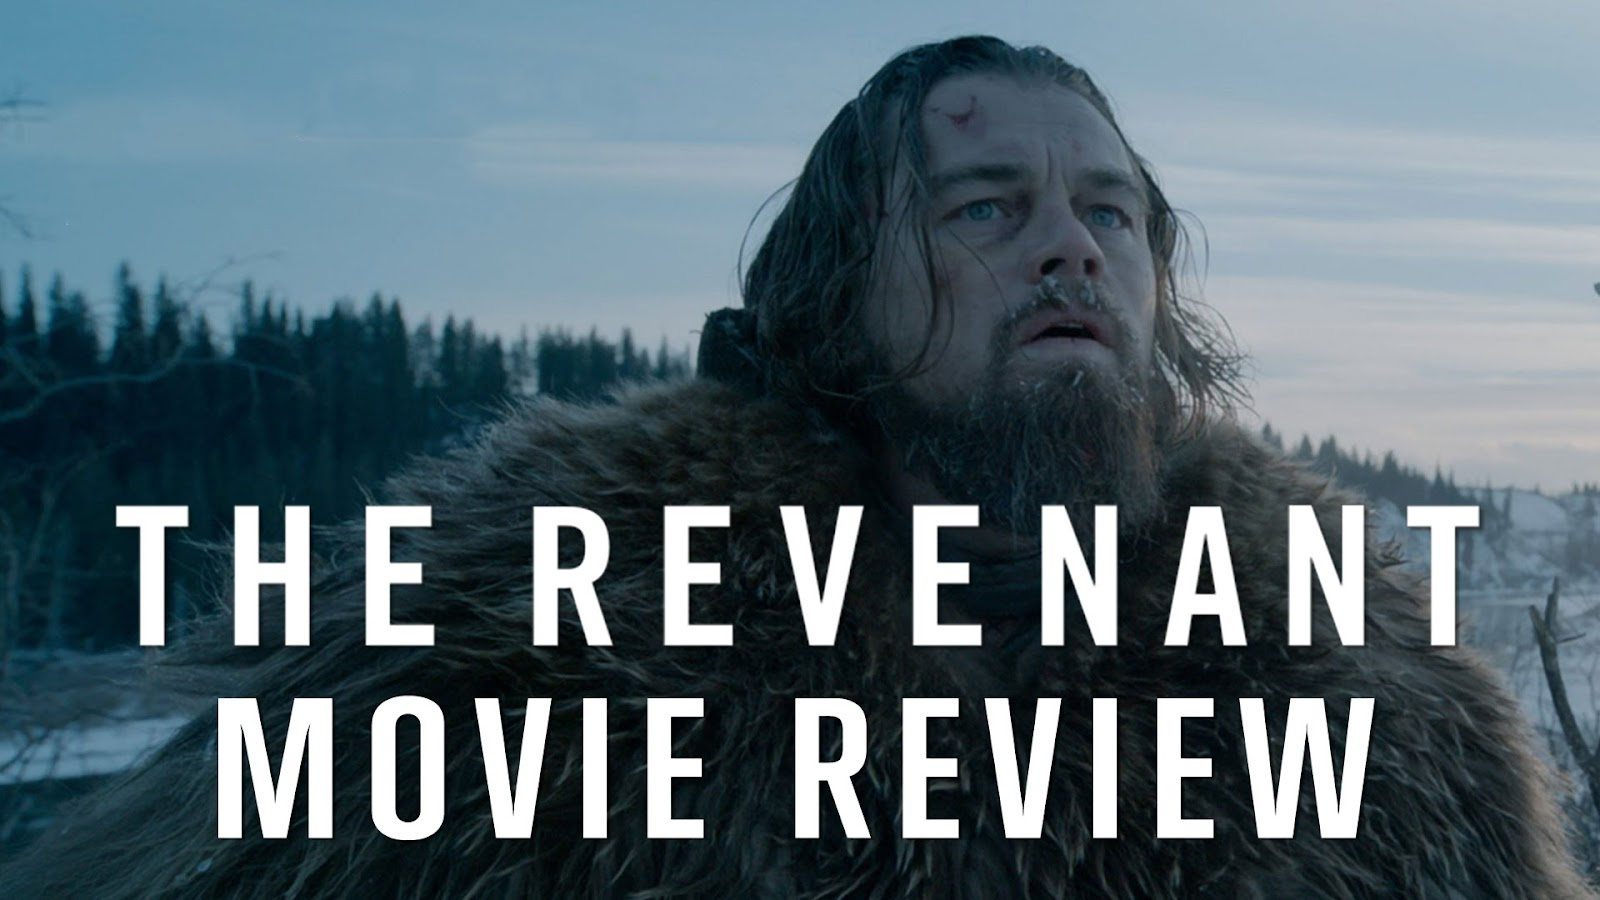 movie review The Revenant podcast